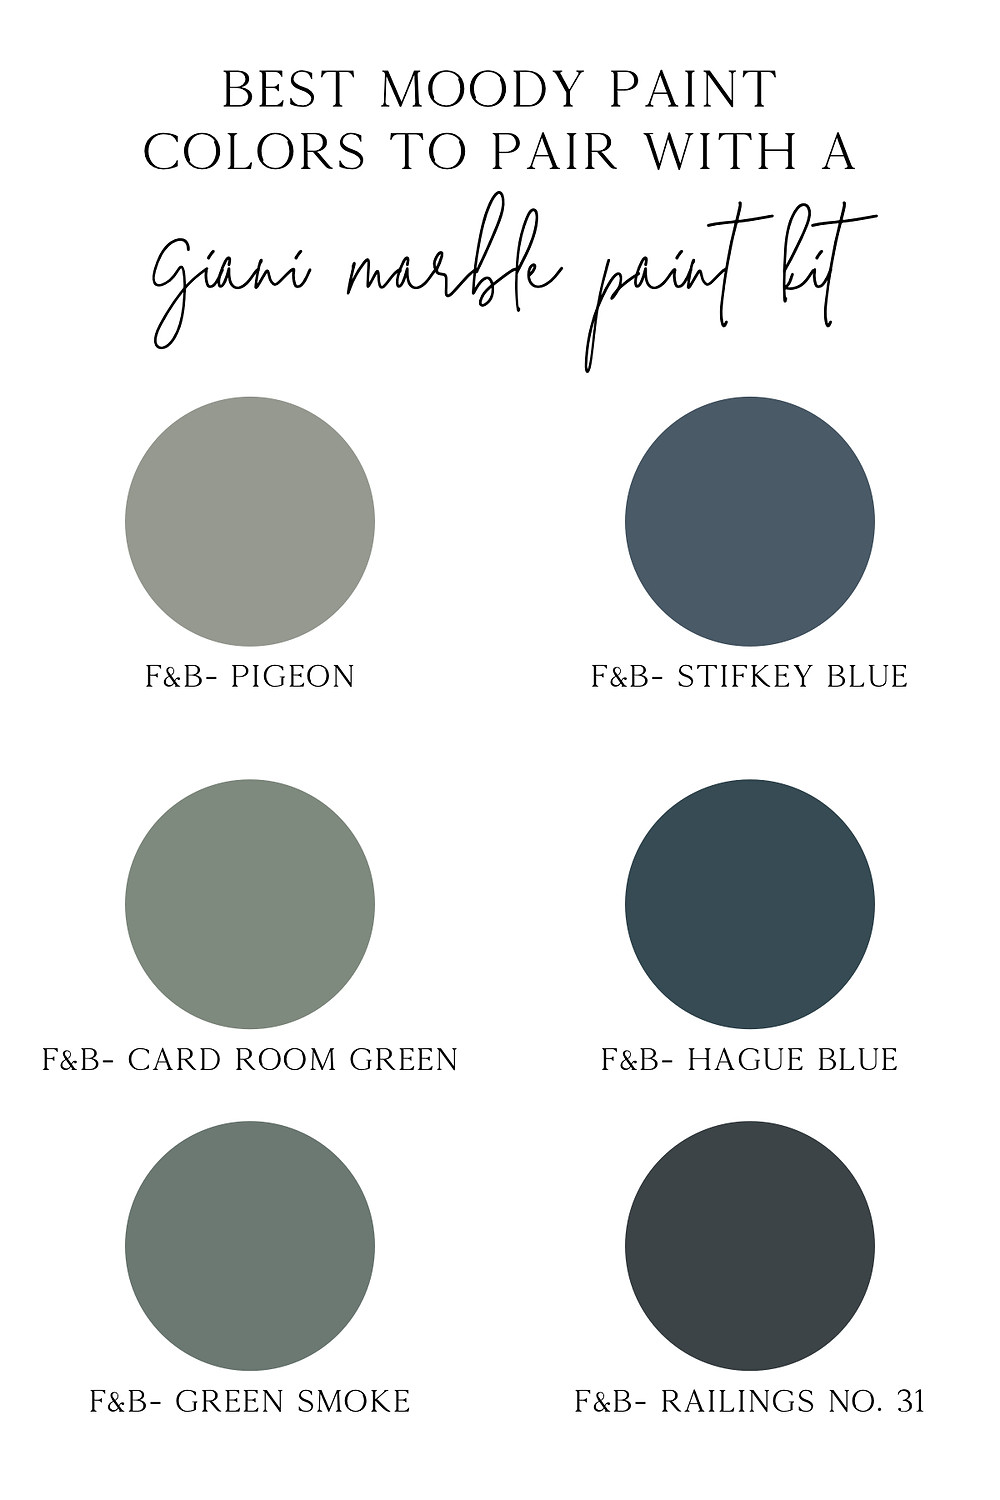 best moody paint colors to pair with a giani marble paint kit